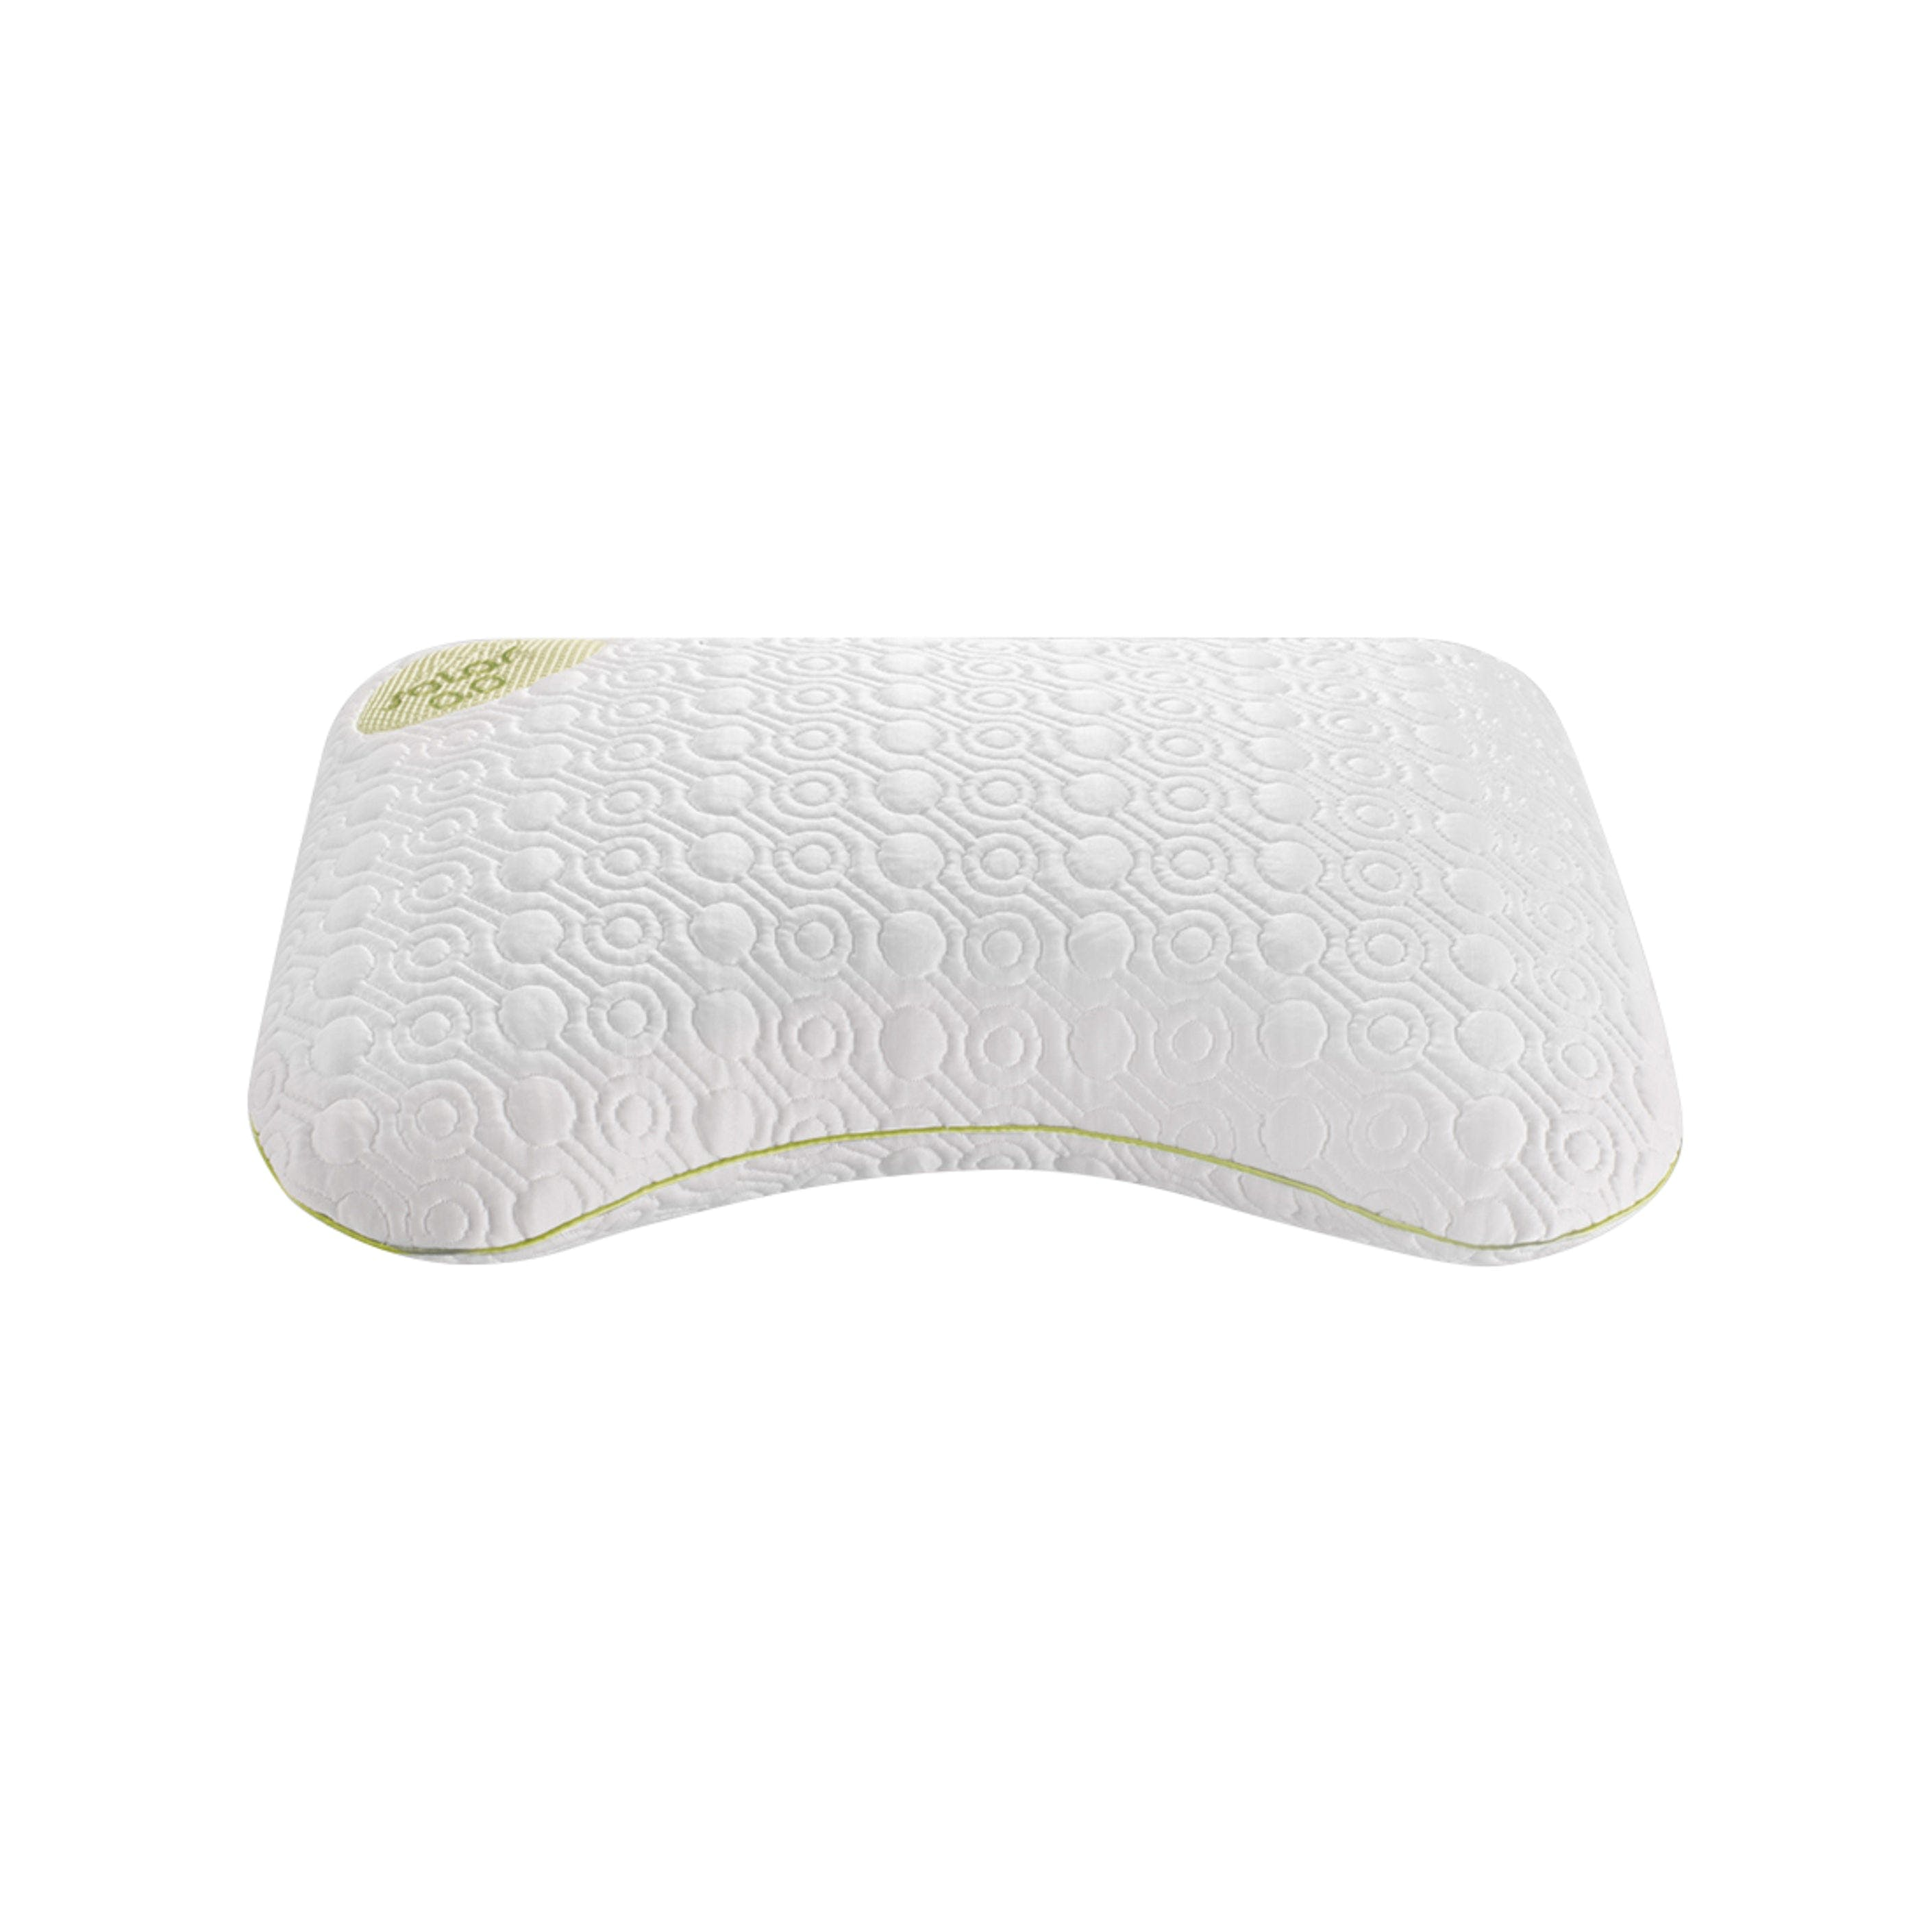 mattress series performance product metro pillow balance bedgear front